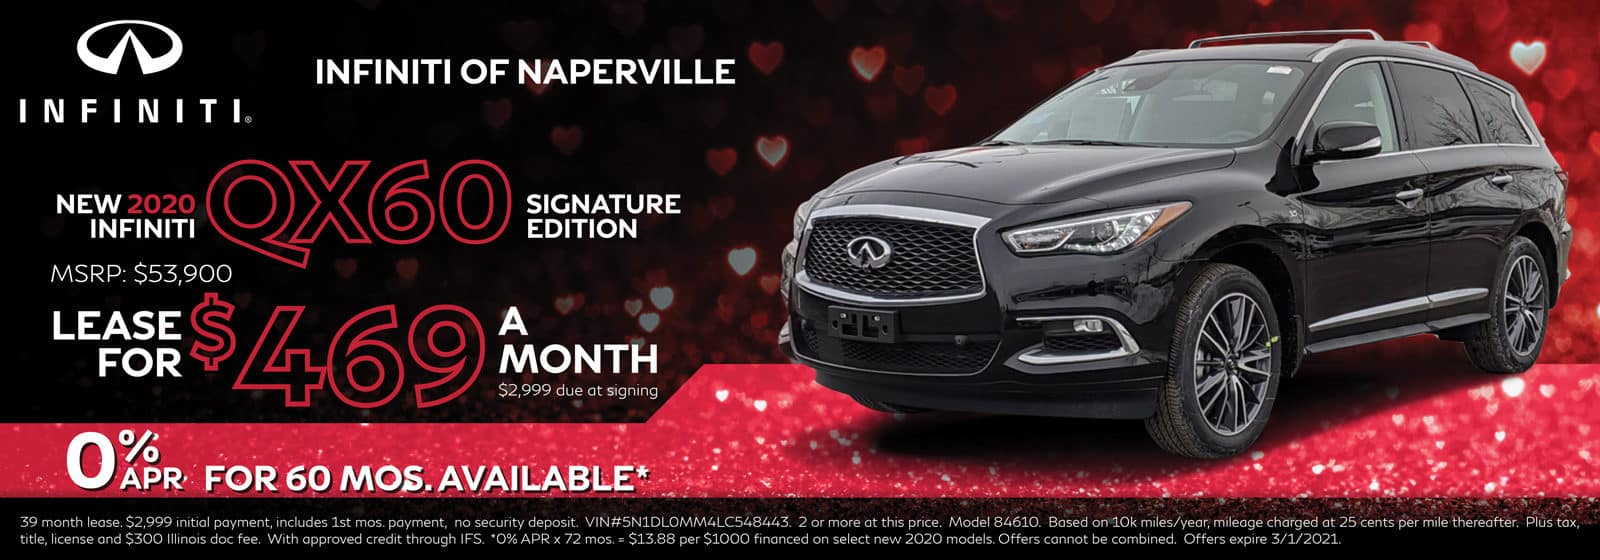 2020 INFINITI QX60 lease offer, $469/mo for 39 Months | Naperville, I